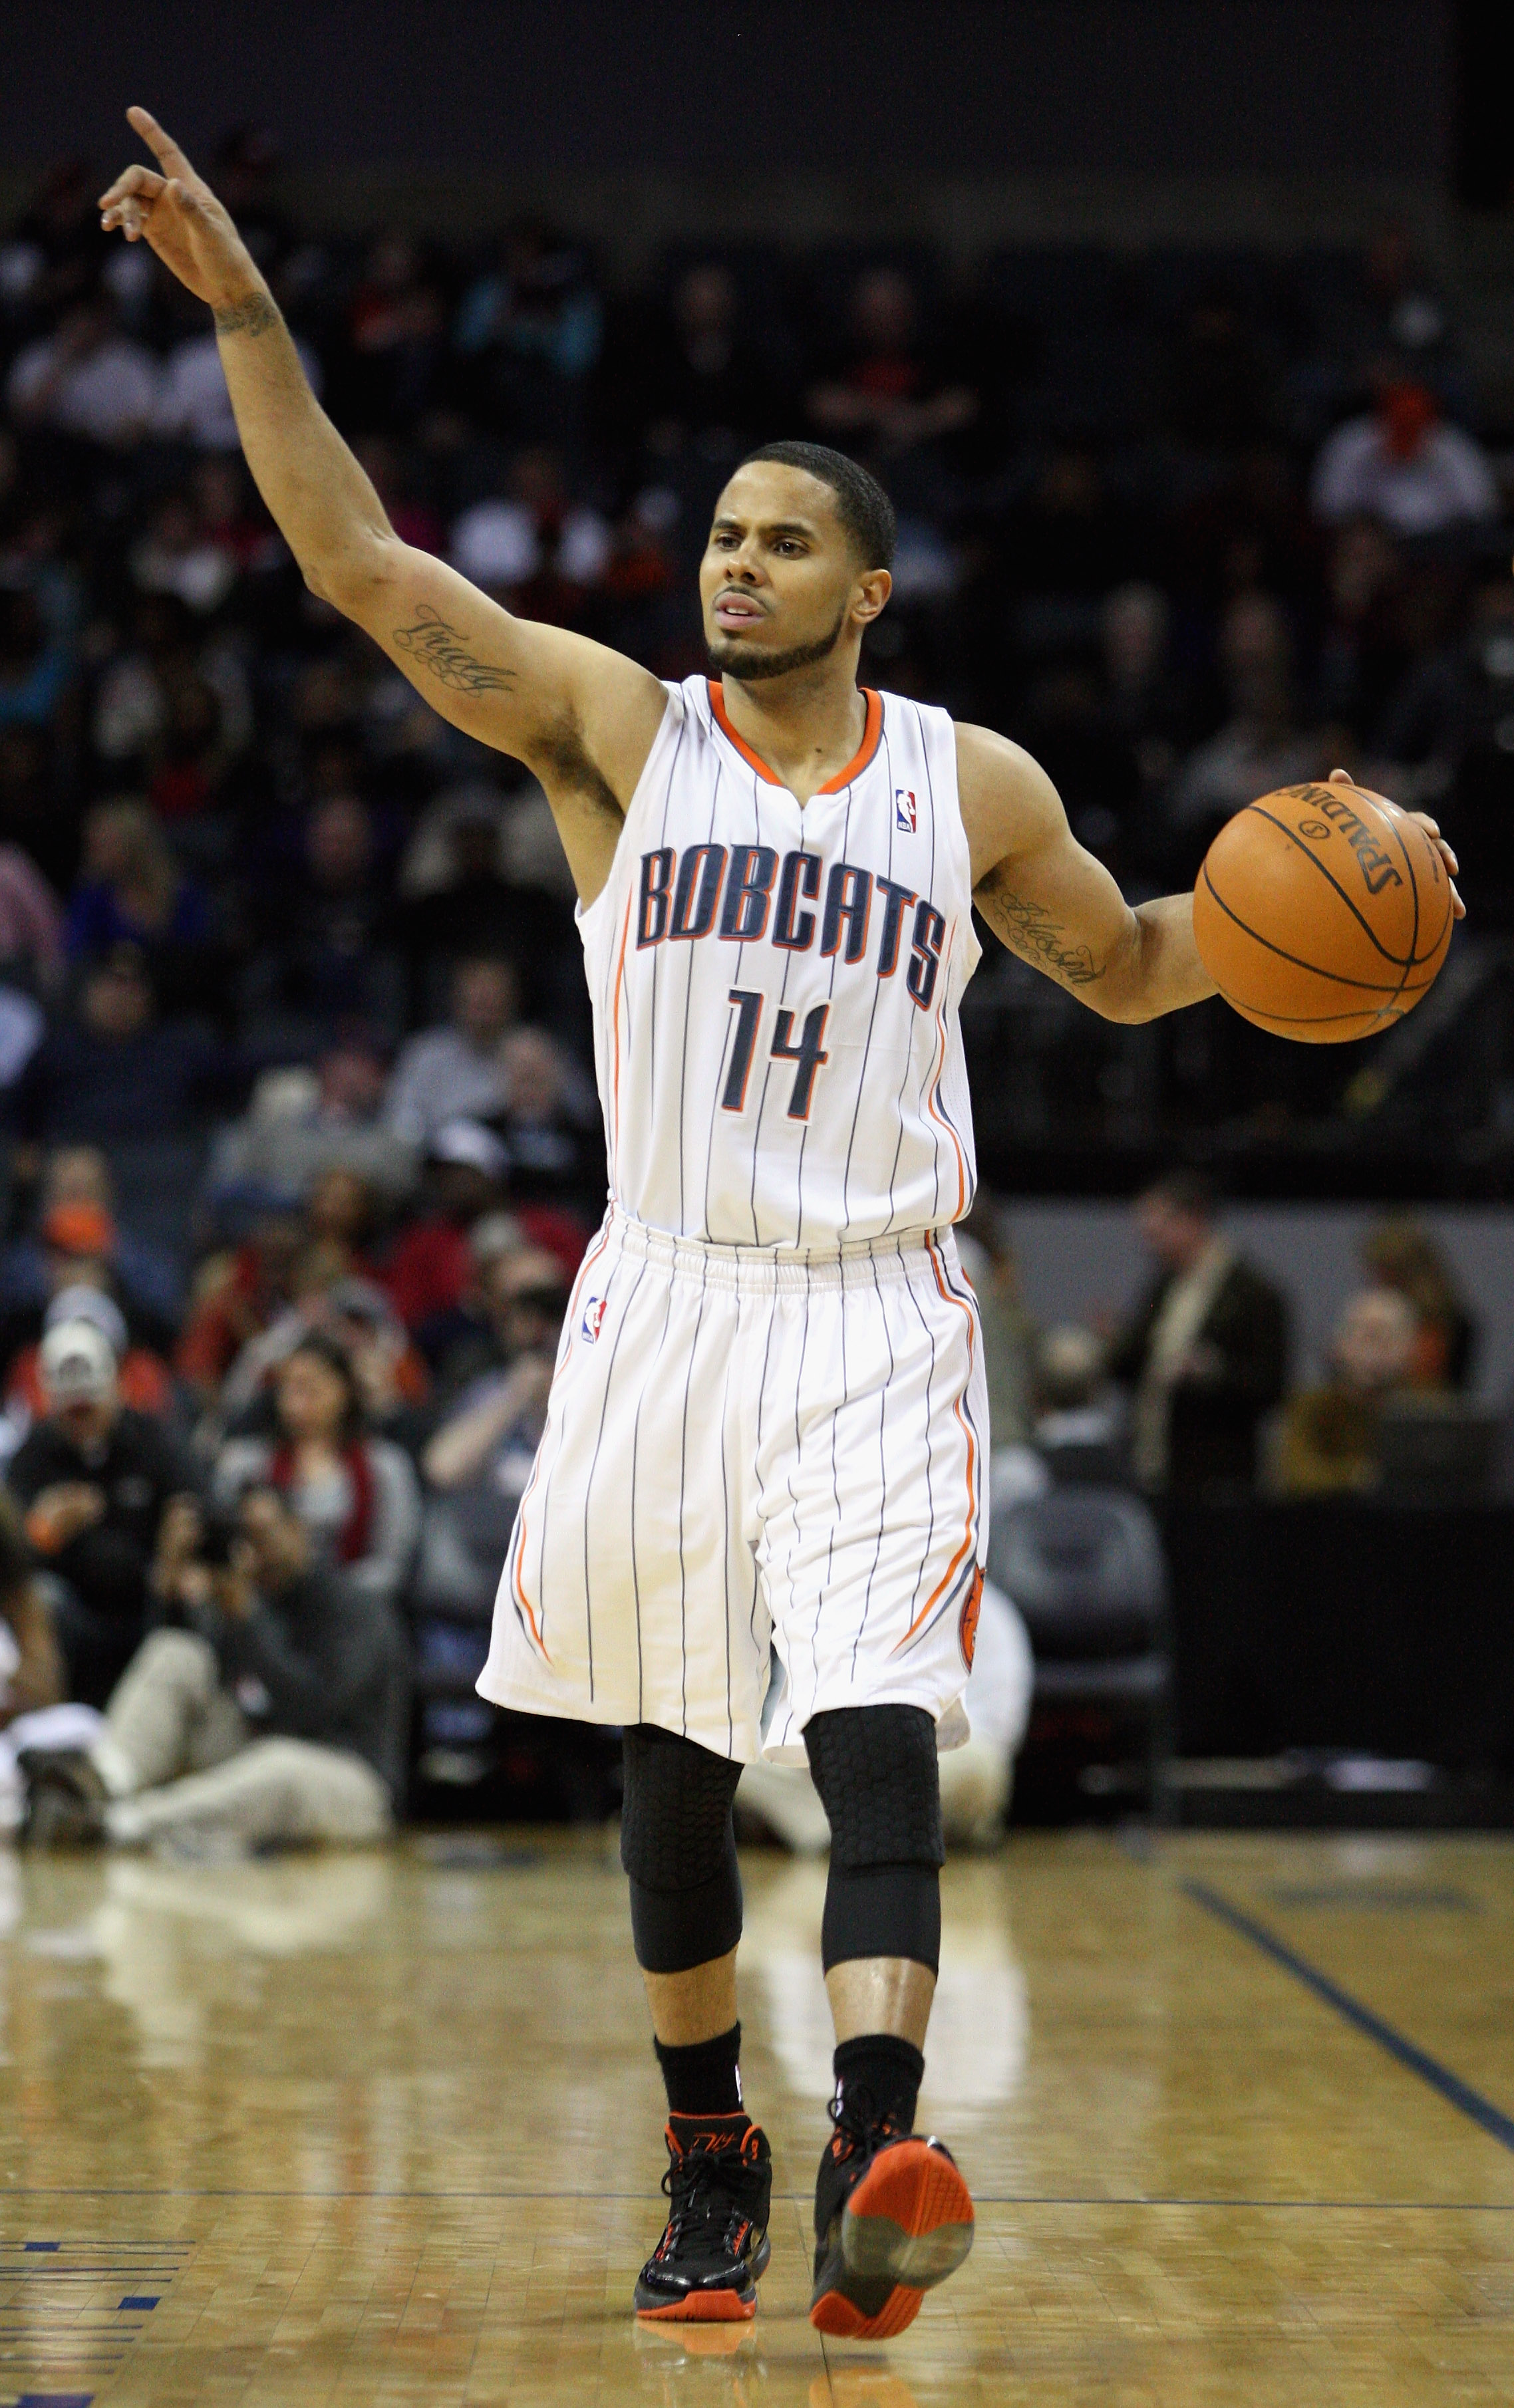 CHARLOTTE, NC - JANUARY 12:  D.J. Augustin #14 of the Charlotte Bobcats calls a play against the Chicago Bulls during their game at Time Warner Cable Arena on January 12, 2011 in Charlotte, North Carolina. NOTE TO USER: User expressly acknowledges and agr